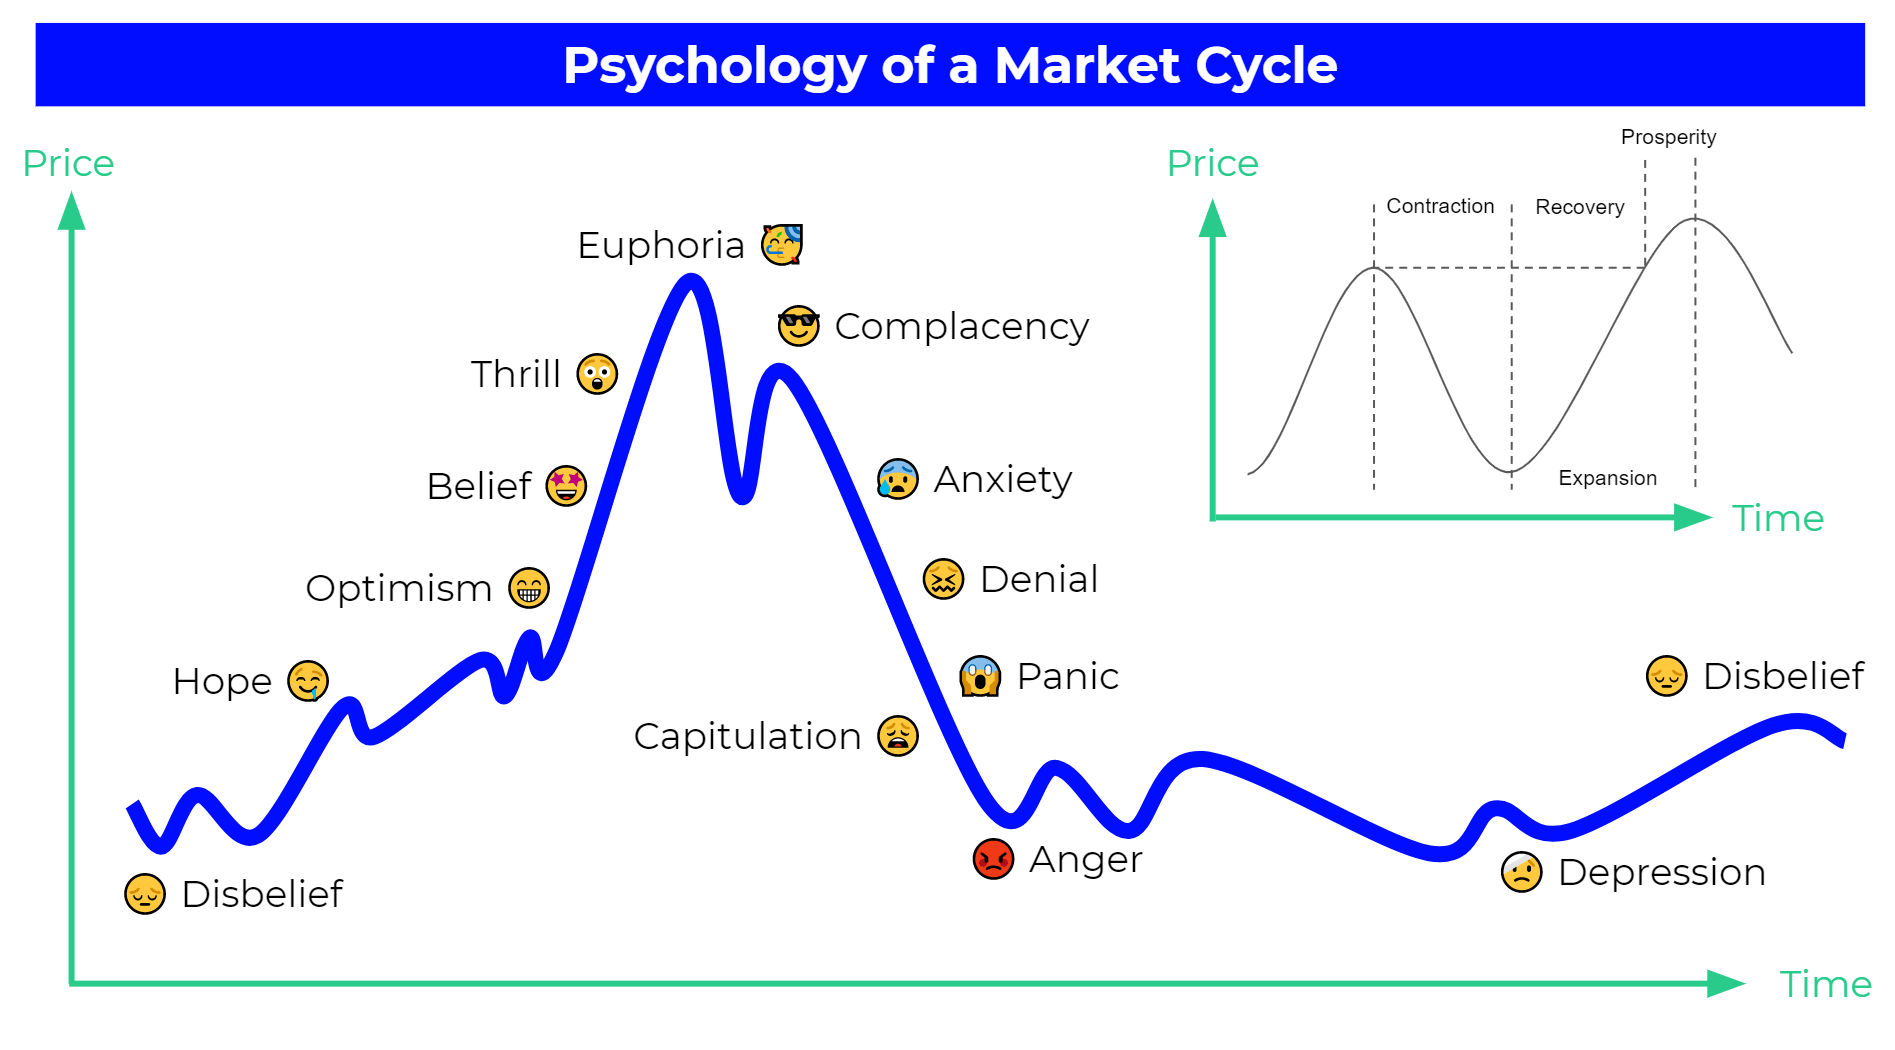 Psychology of Market Cycle